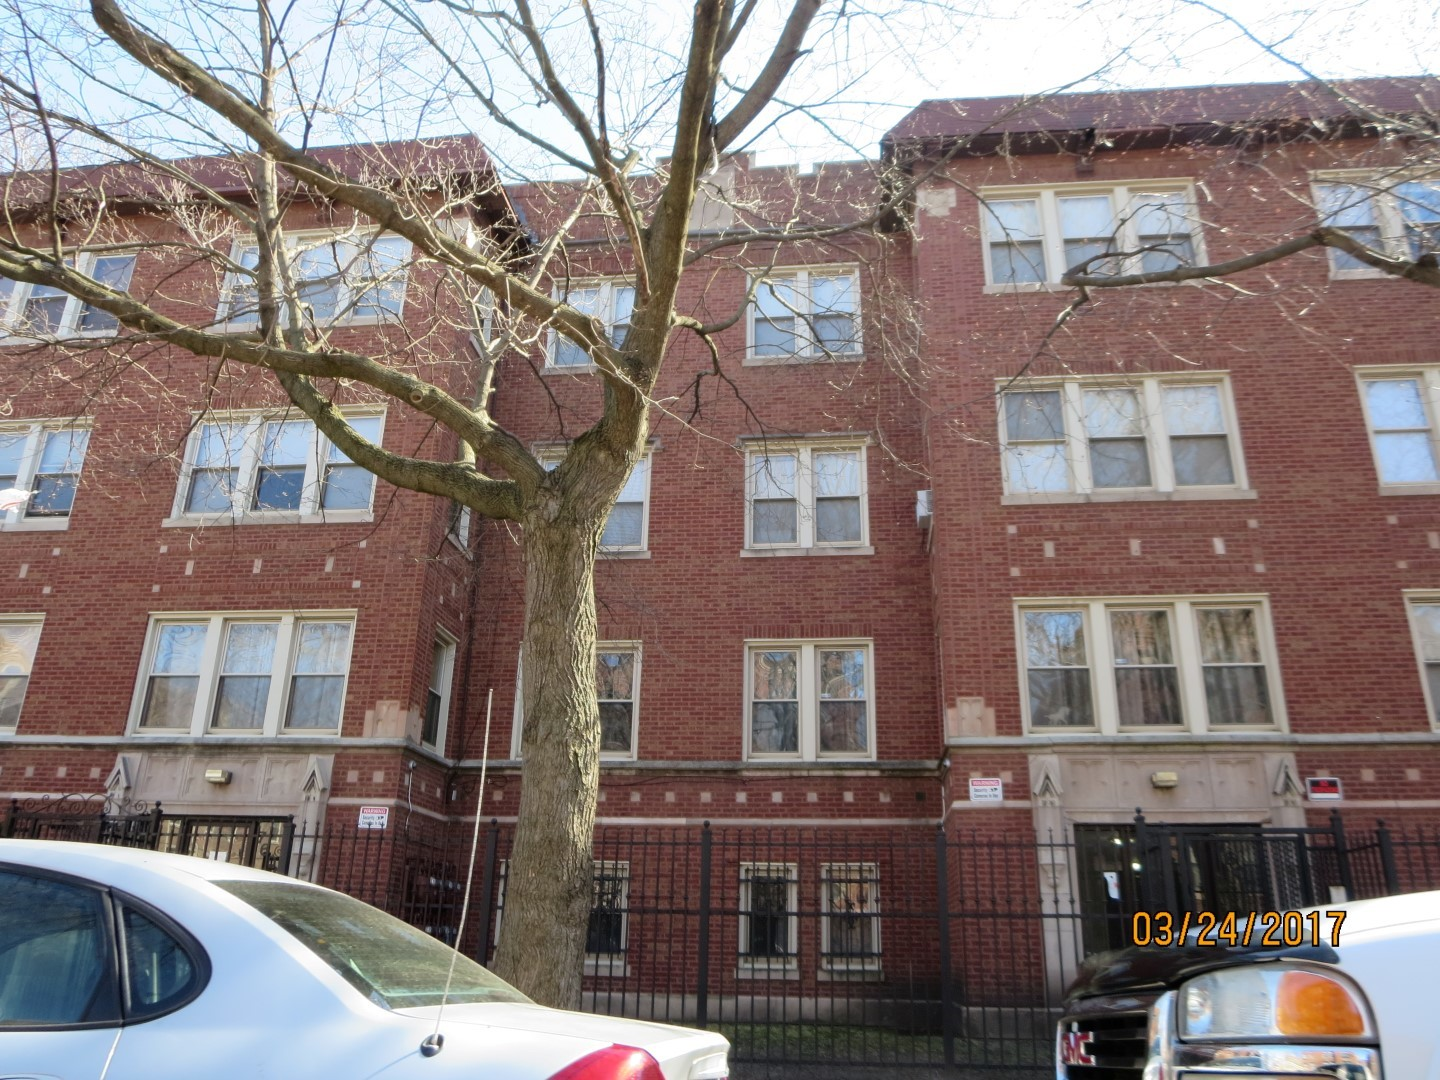 2 bedroom condo in a classic brick vintage building.  SOLD AS-IS AND READY FOR A NEW FAMILY.   NOT BANK OWNED AND NOT A SHORT SALE, OWNERS ARE LOCAL AND MOTIVATED.  THIS HOME IS BEING SOLD AS-IS, SO PLEASE INSPECT PRIOR TO SUBMITTING AN OFFER.  PLEASE NOTE: 0% TAX PRORATIONS ARE OFFERED, THE SELLER WILL PAY CURRENT AND ALL PRIOR TAX BUT 0% CREDIT FOR FUTURE BILLS.  SPECIAL WARRANTY DEED AT CLOSING. NO SURVEY.  FOR FASTER RESPONSE PLEASE USE SELLERS CONTRACT, ADDENDUM AND DISCLOSURES UNDER DOCUMENTS. EMAILING AGENT IS PREFERRED OVER CALLS .